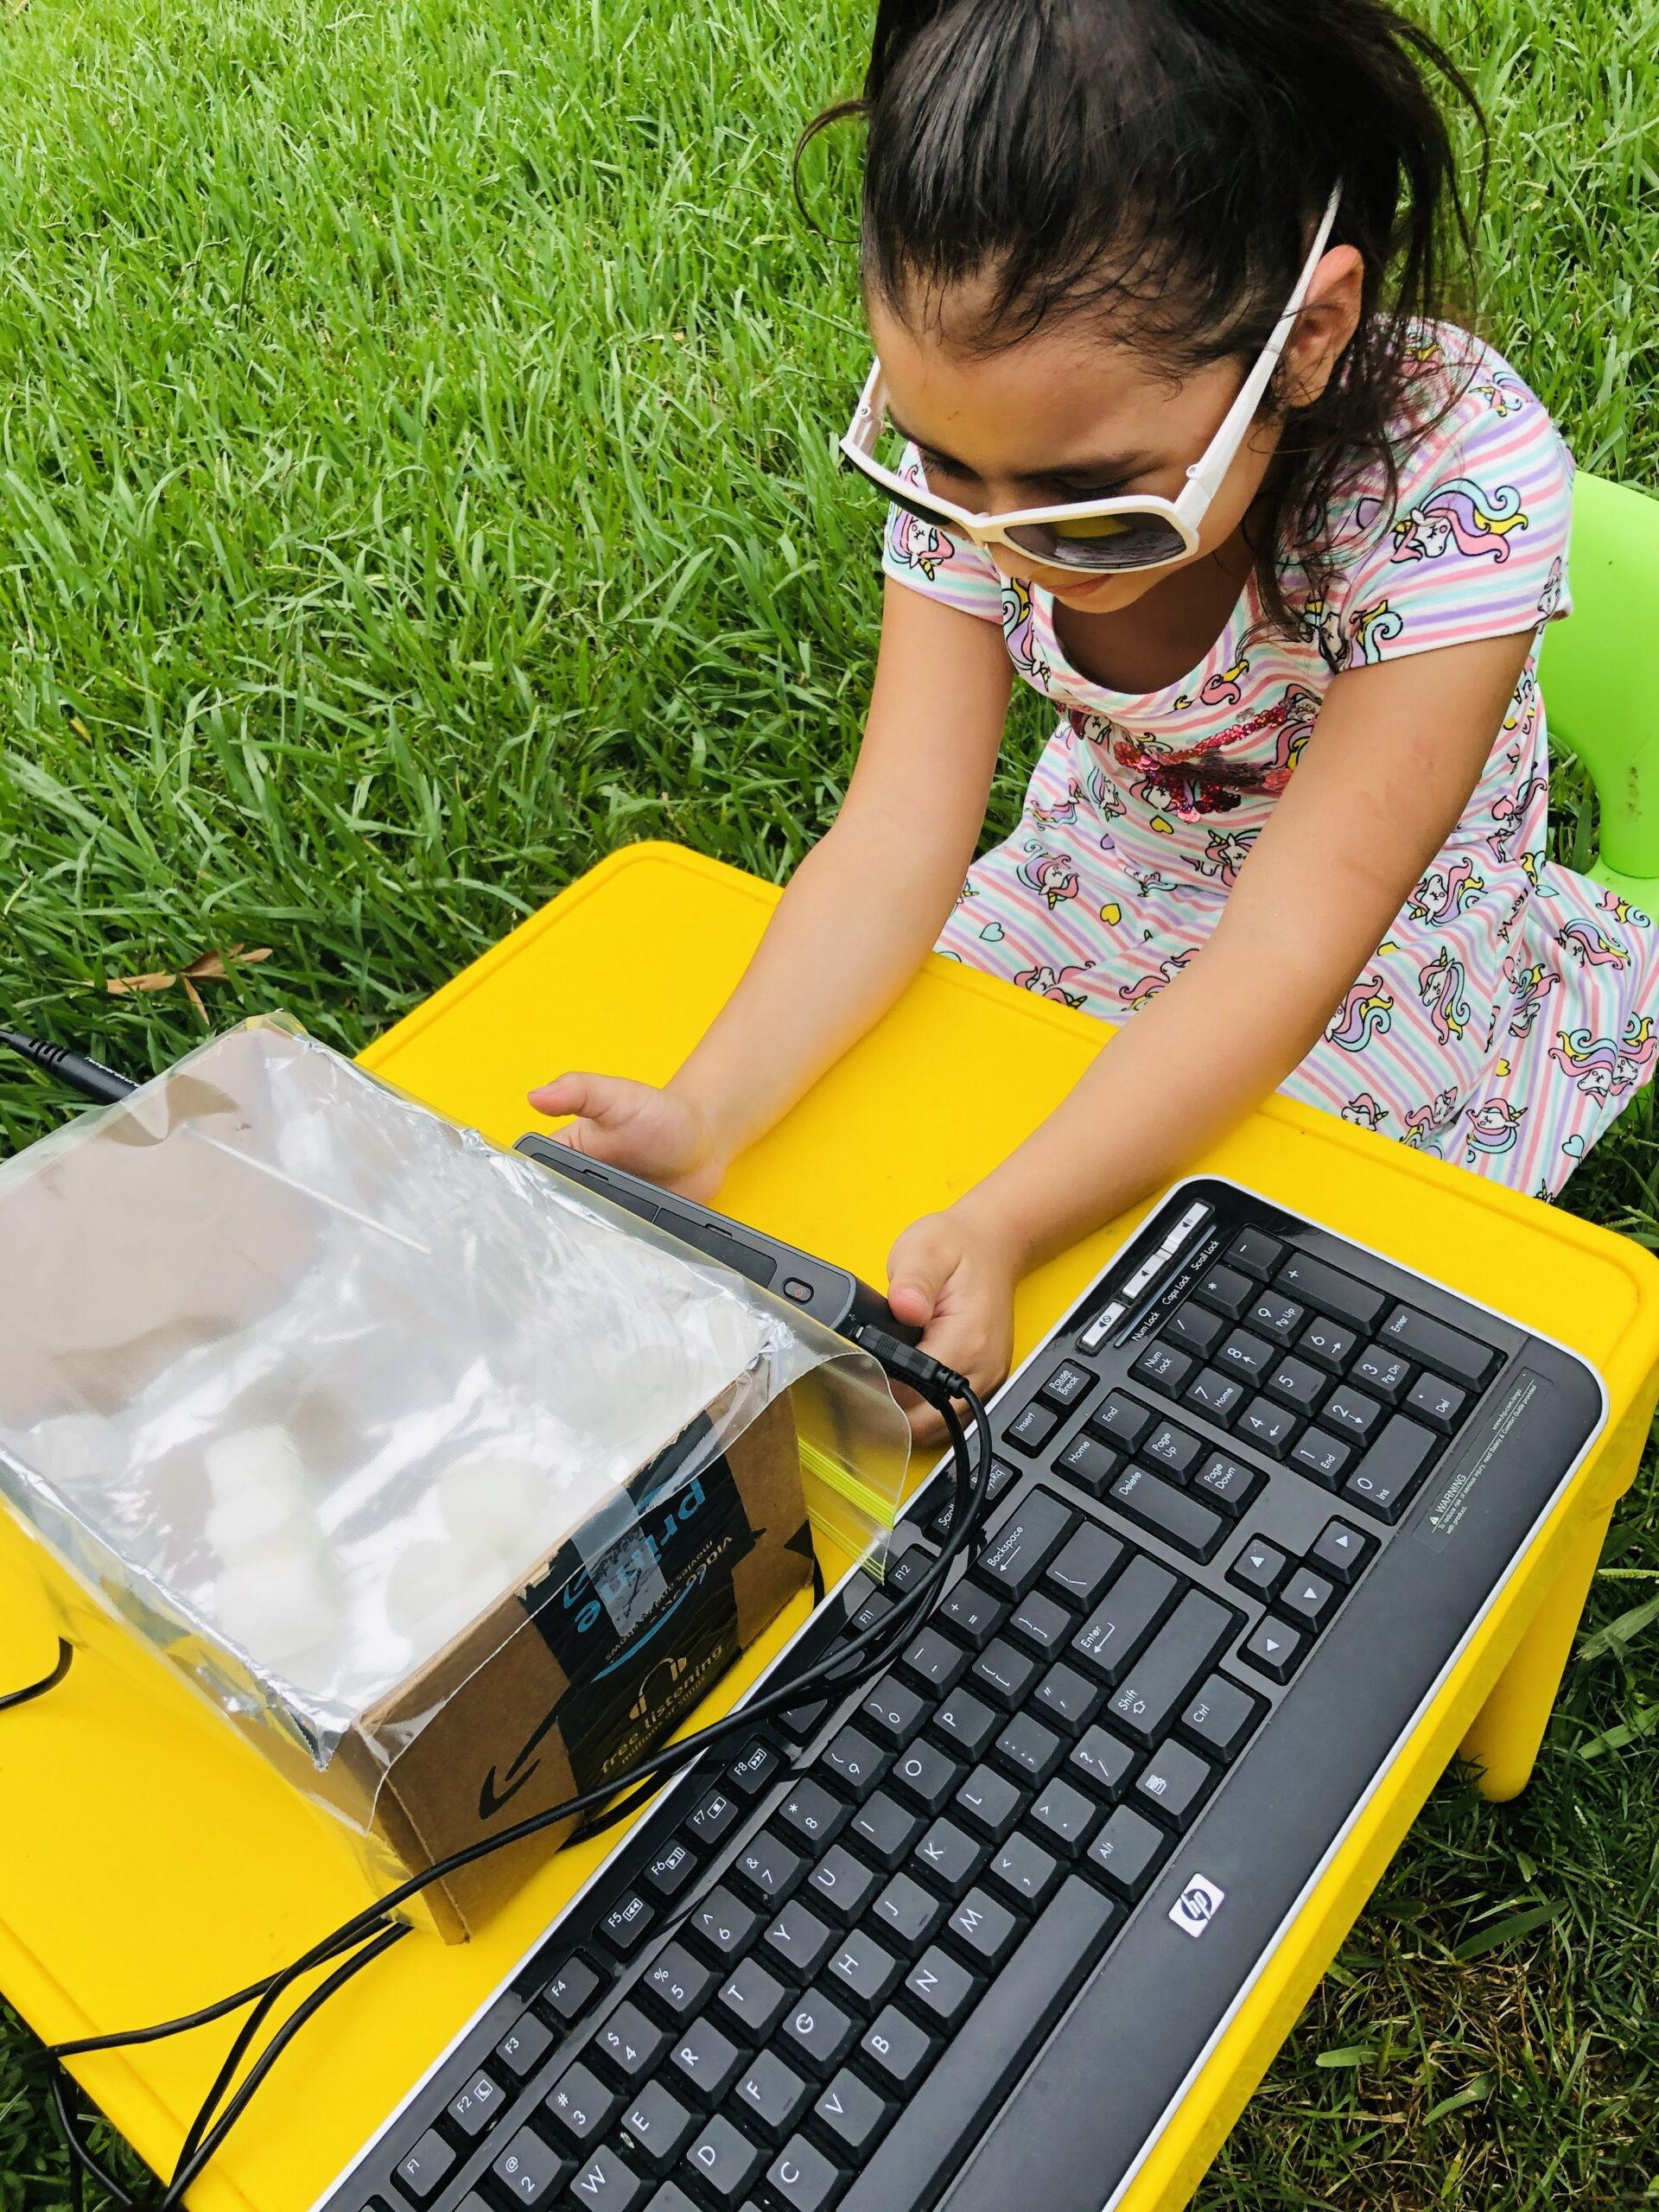 Student using Talking LabQuest in high contrast mode to review data from solar oven activity